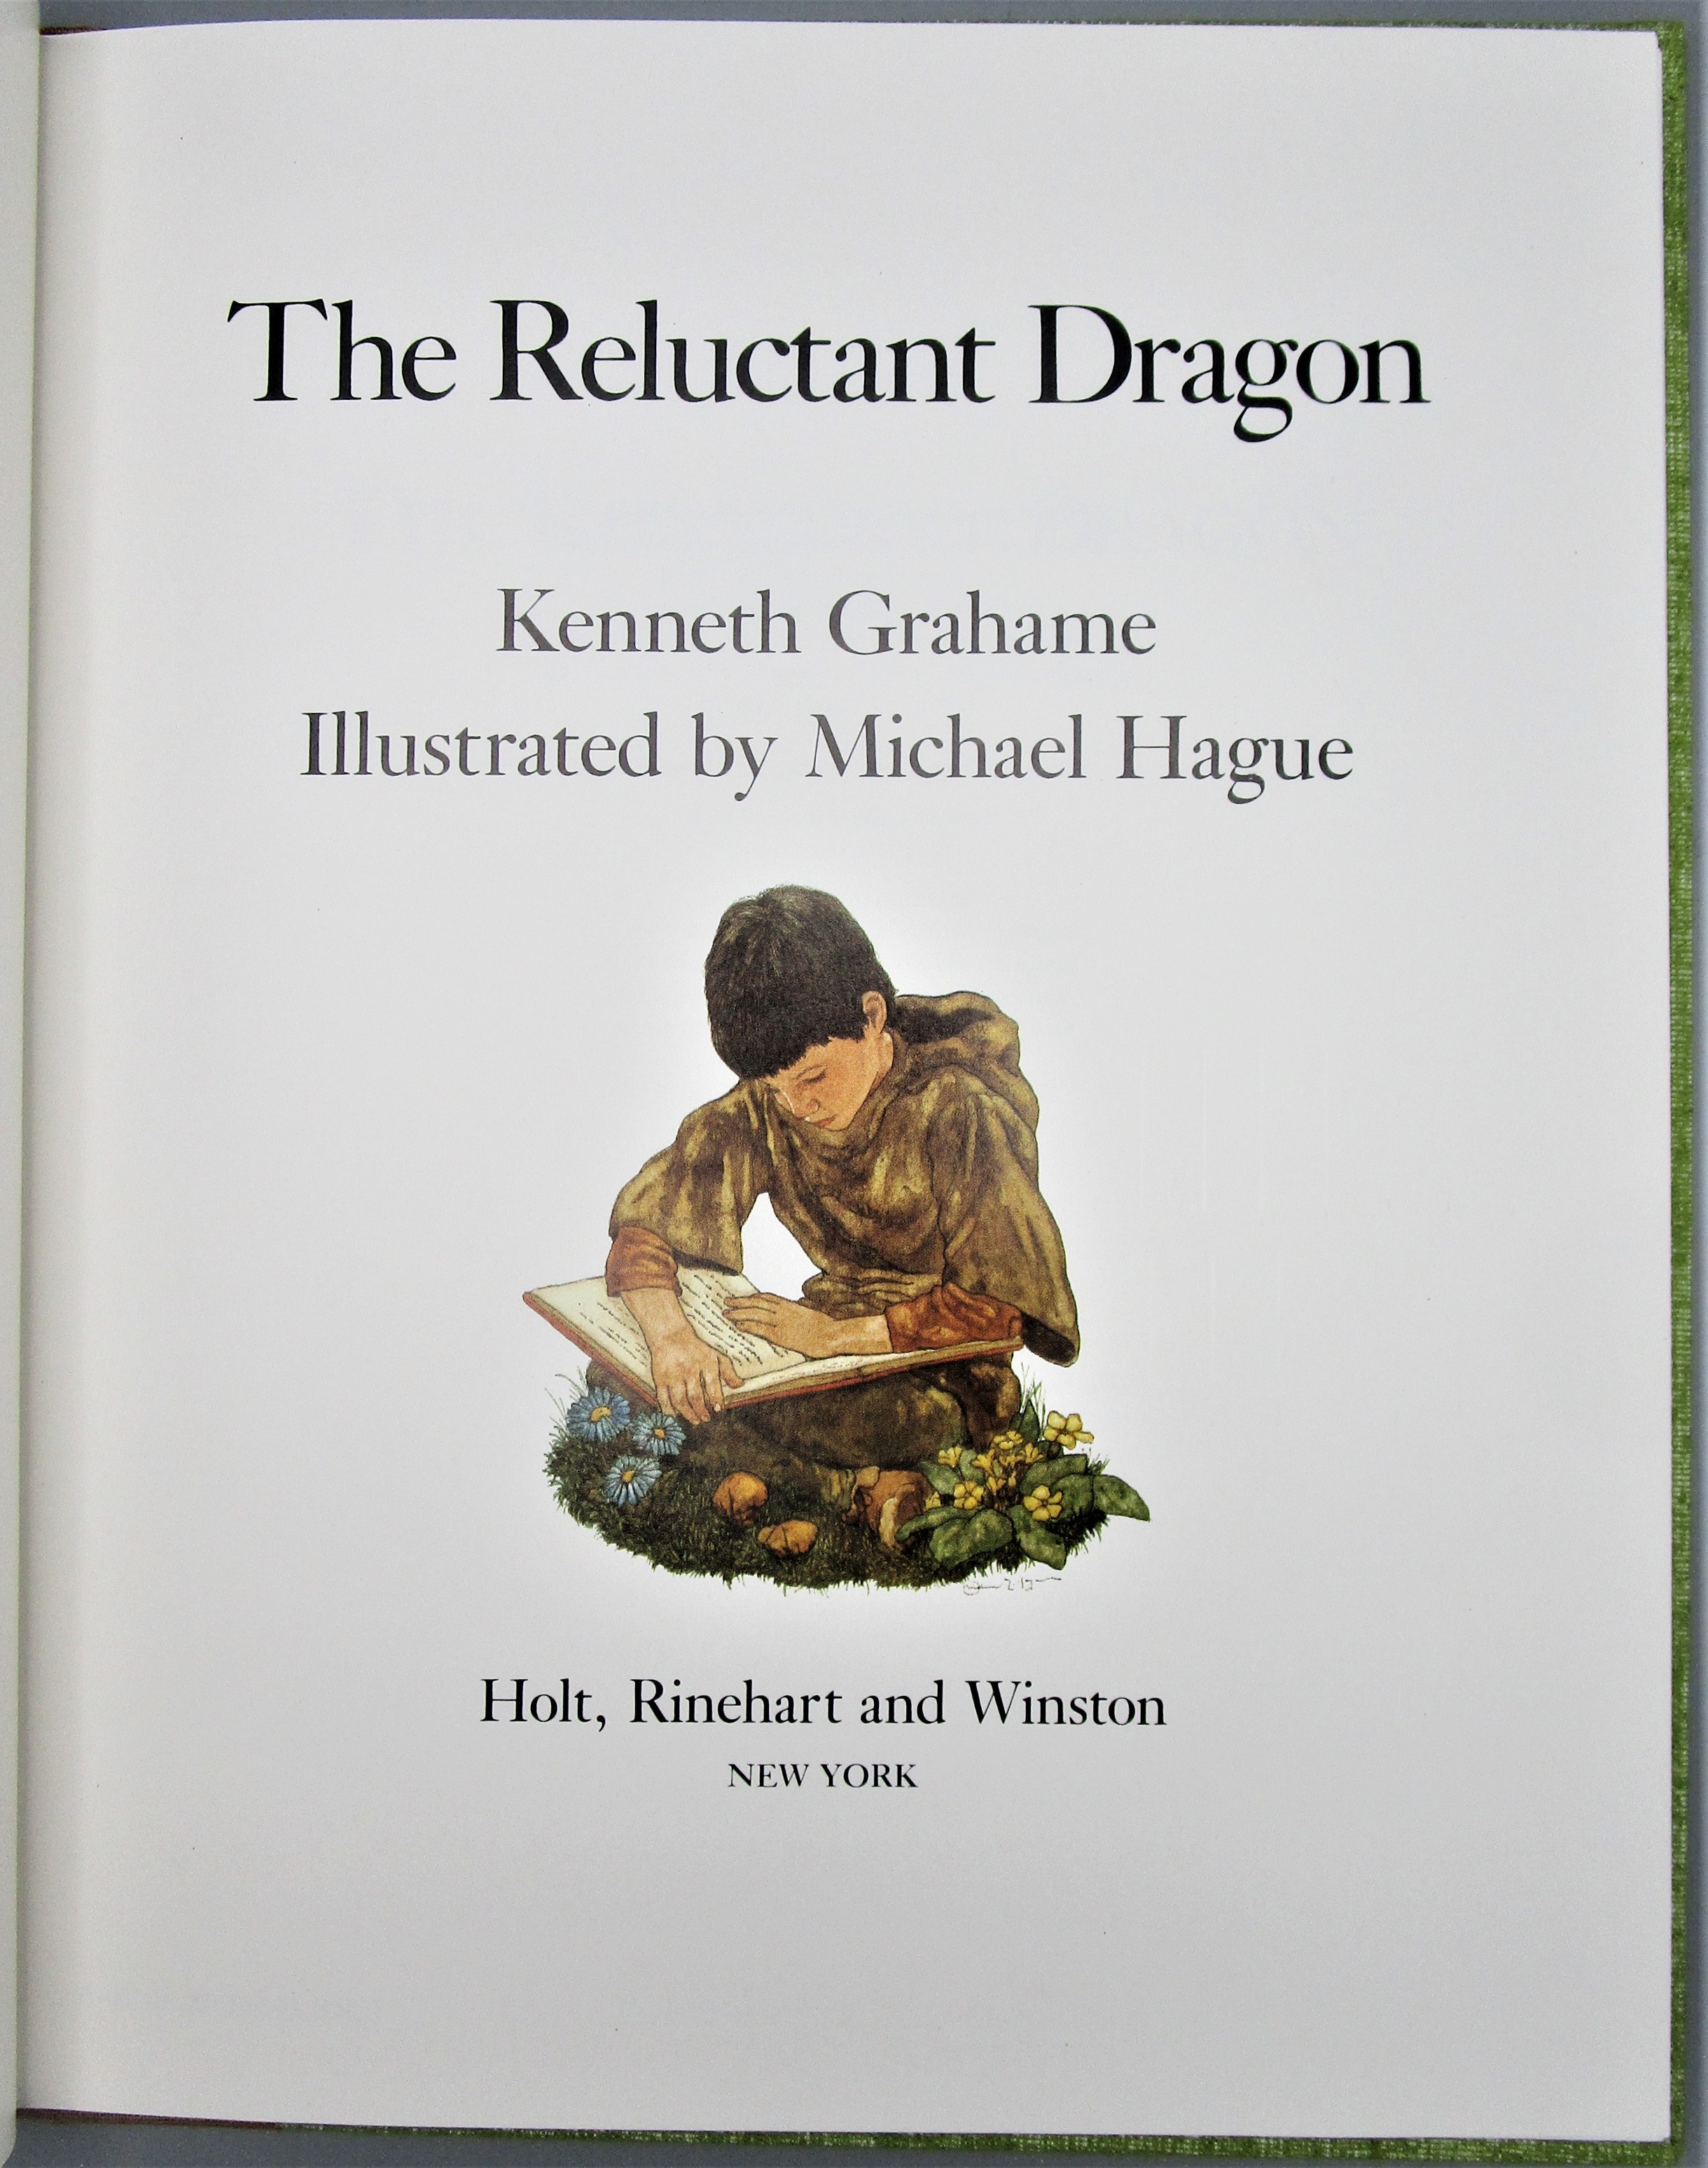 THE RELUCTANT DRAGON, by Kenneth Grahame; Michael Hague - 1983 [Signed Limited Ed]